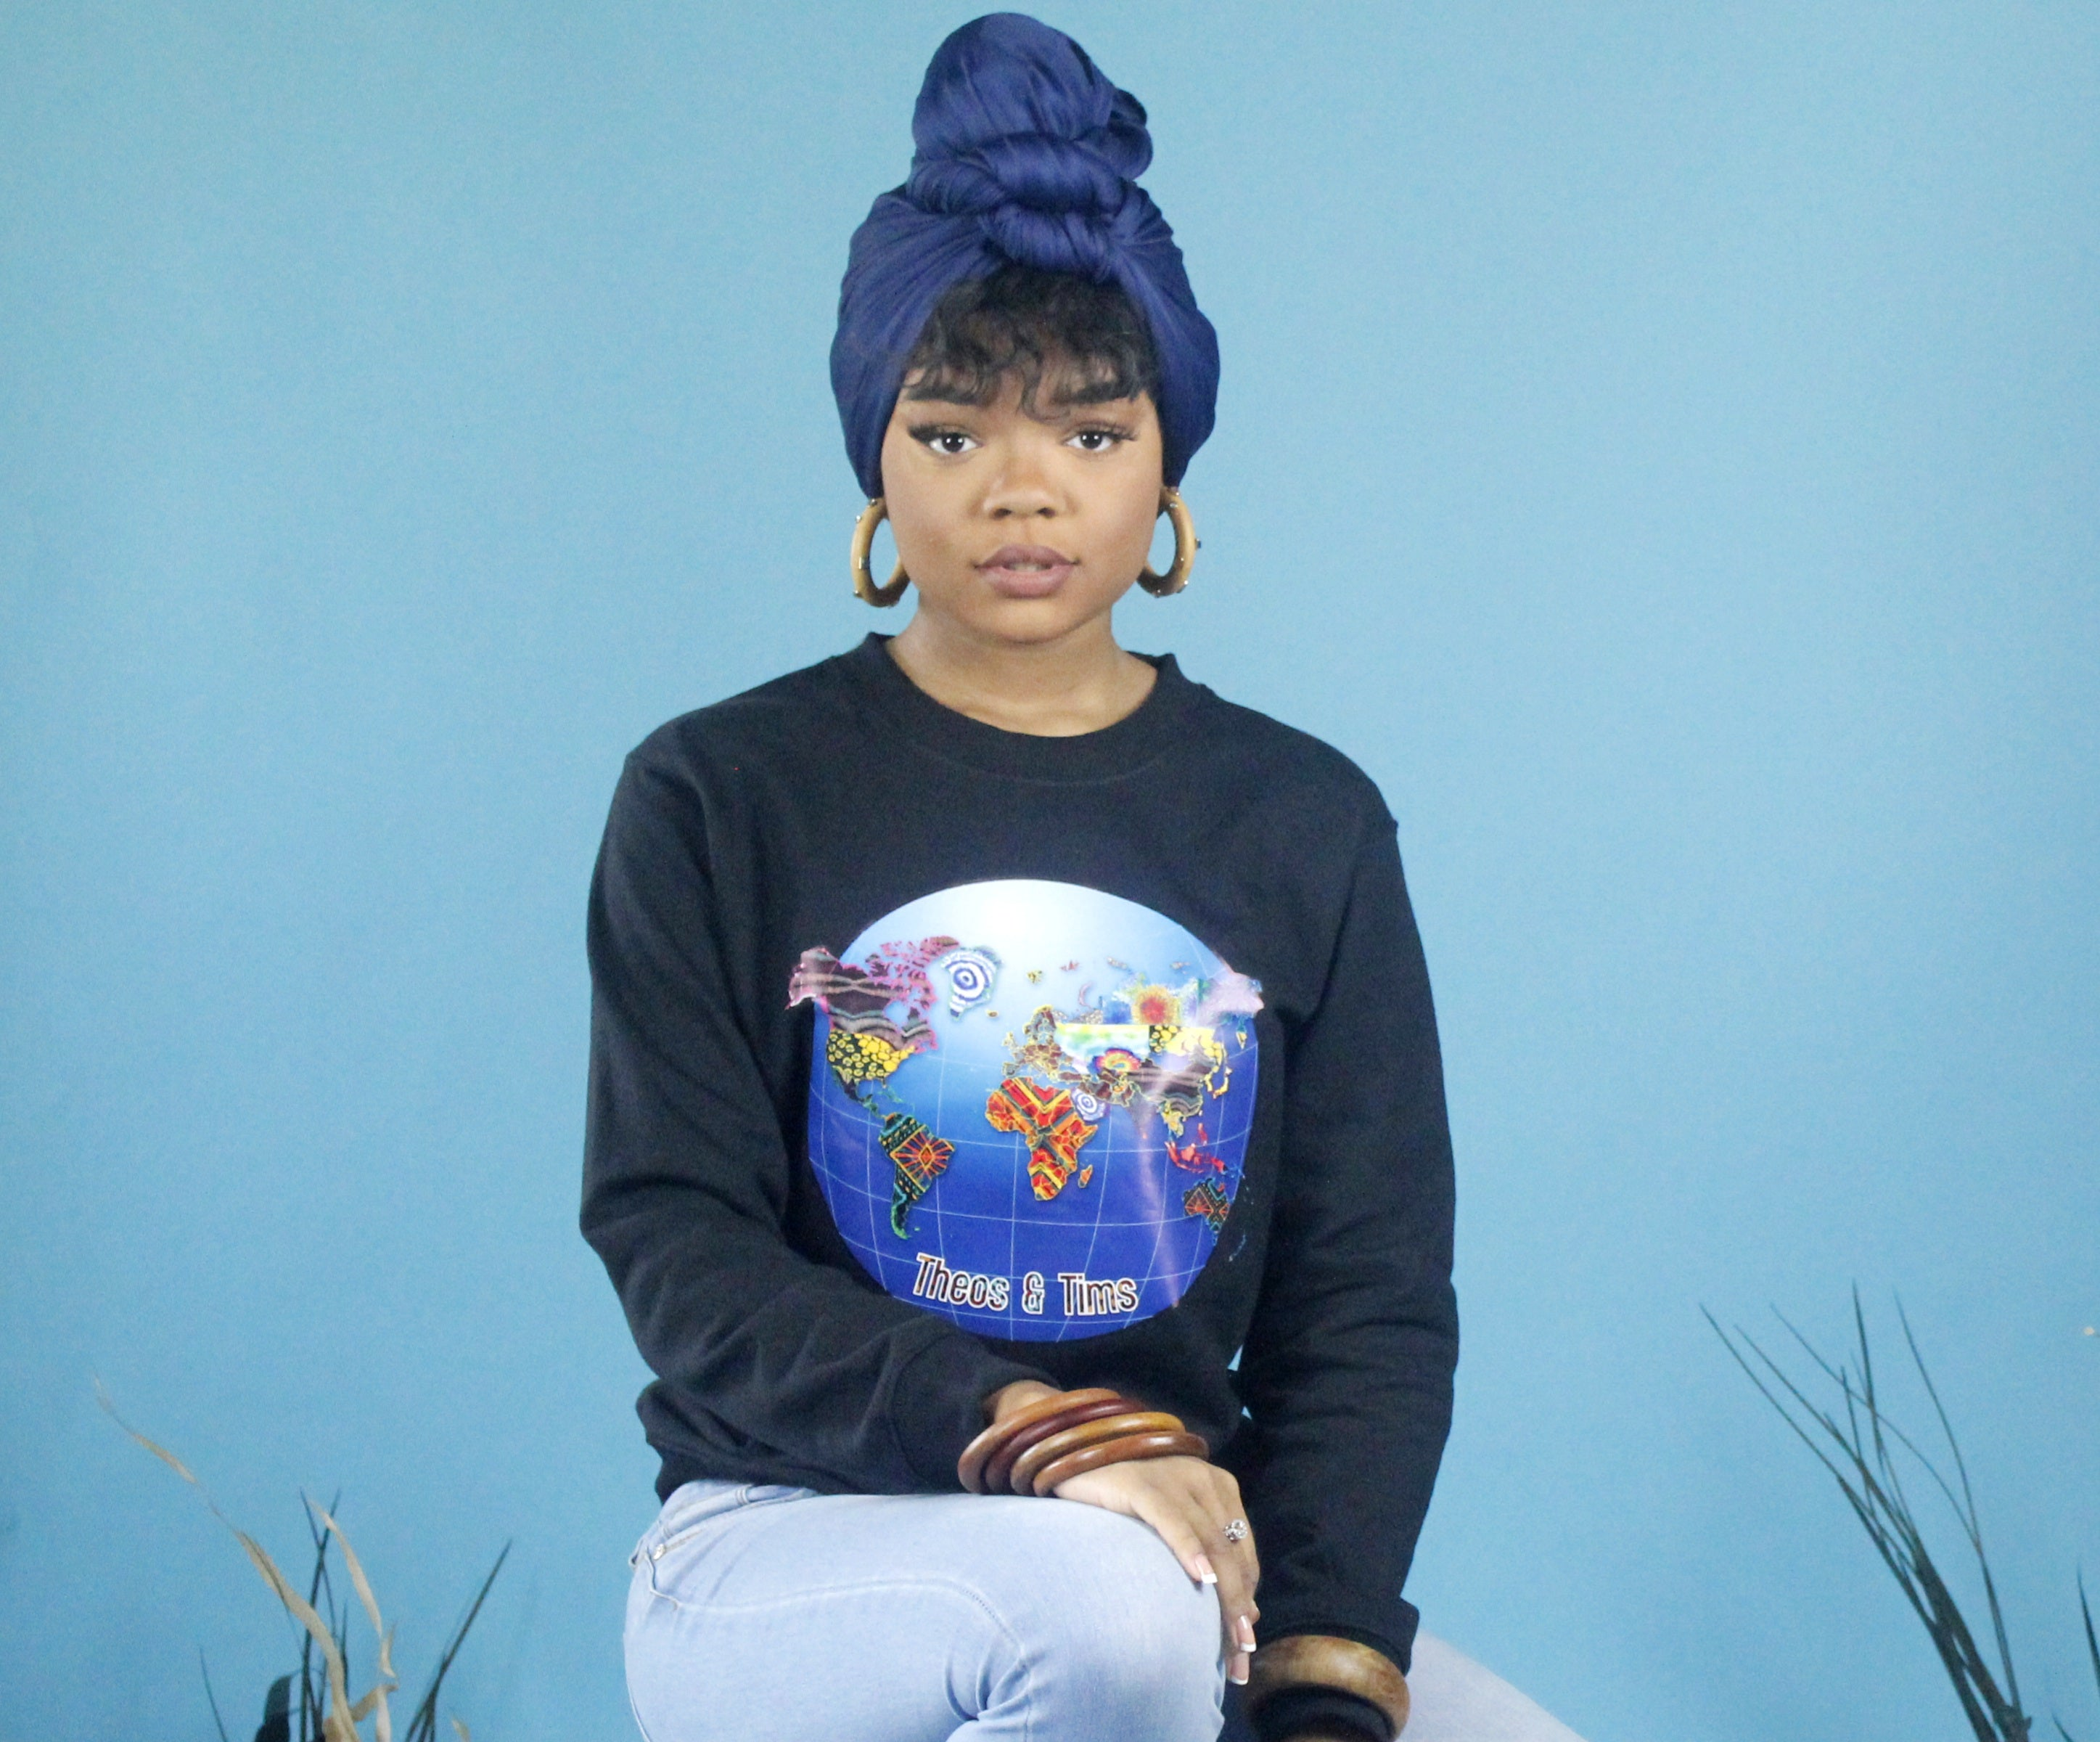 Black Unisex Sweatshirt - World 🌎 In Prints